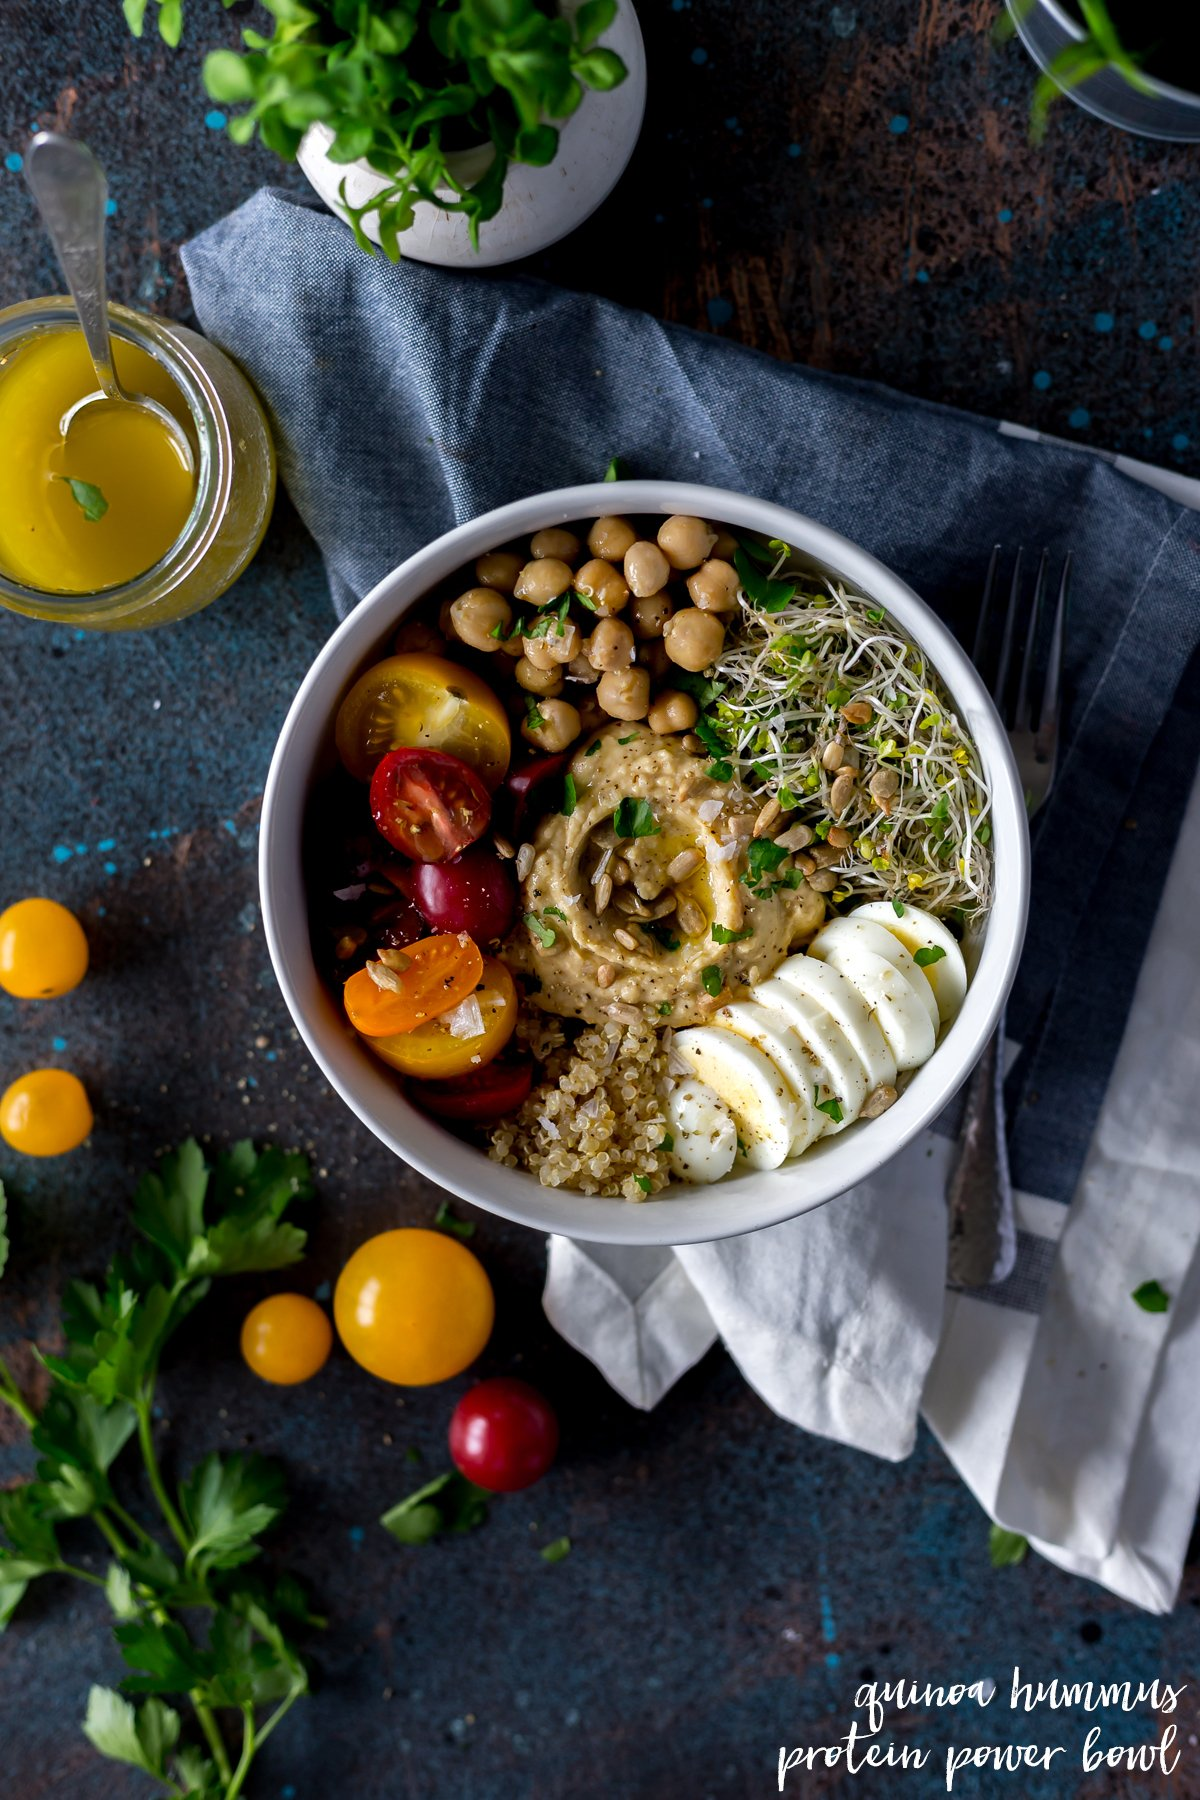 Enjoy a hummus recipe easy enough to whip together in minutes! This flavorful quinoa hummus protein power bowl will leave you satisfied; breakfast, lunch, or dinner! | asimplepantry.com